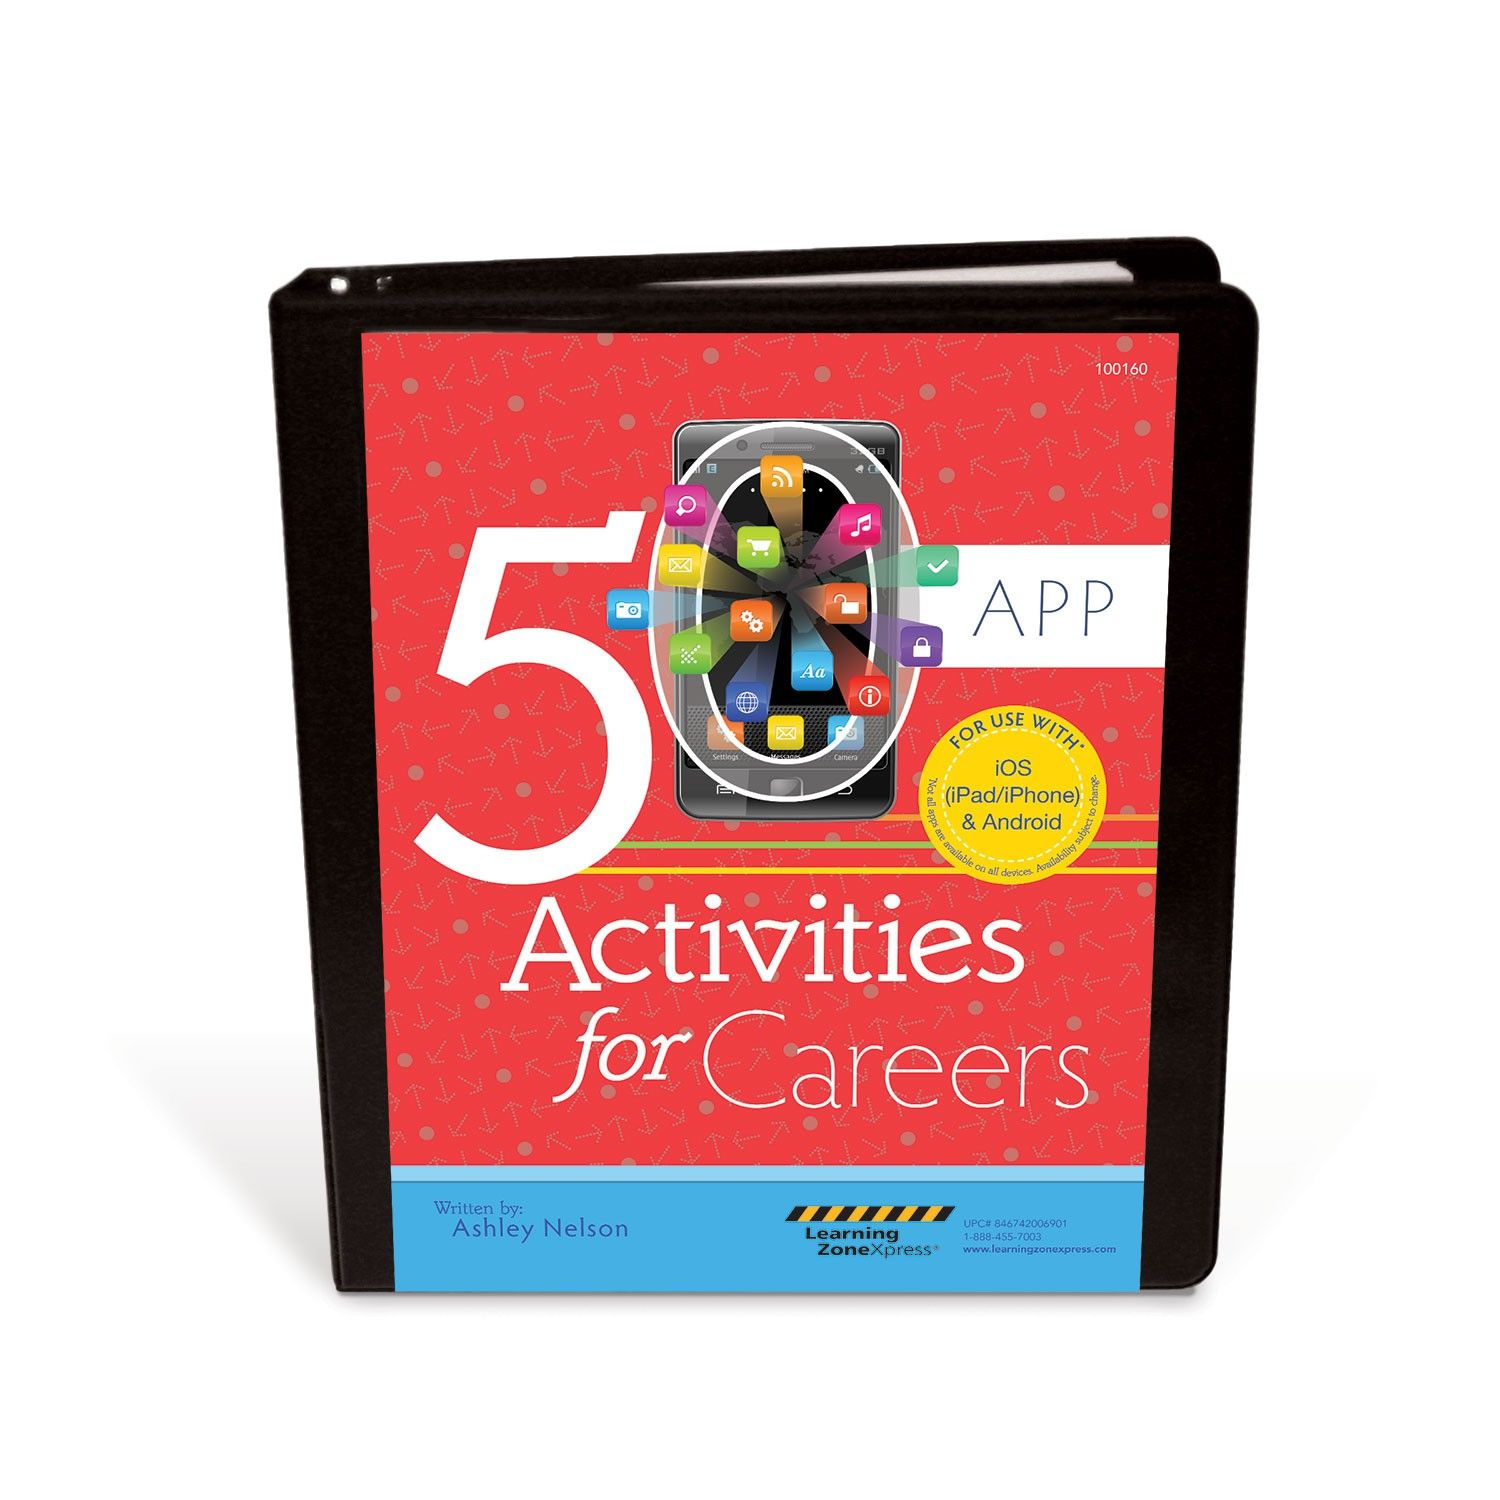 A collection of fifty apps that creatively teach #college, military, and #career-readiness topics through innovative and fun app-driven lessons, games, and #teacher resources that make #learning interactive and engaging with the use of iOS and Android devices.